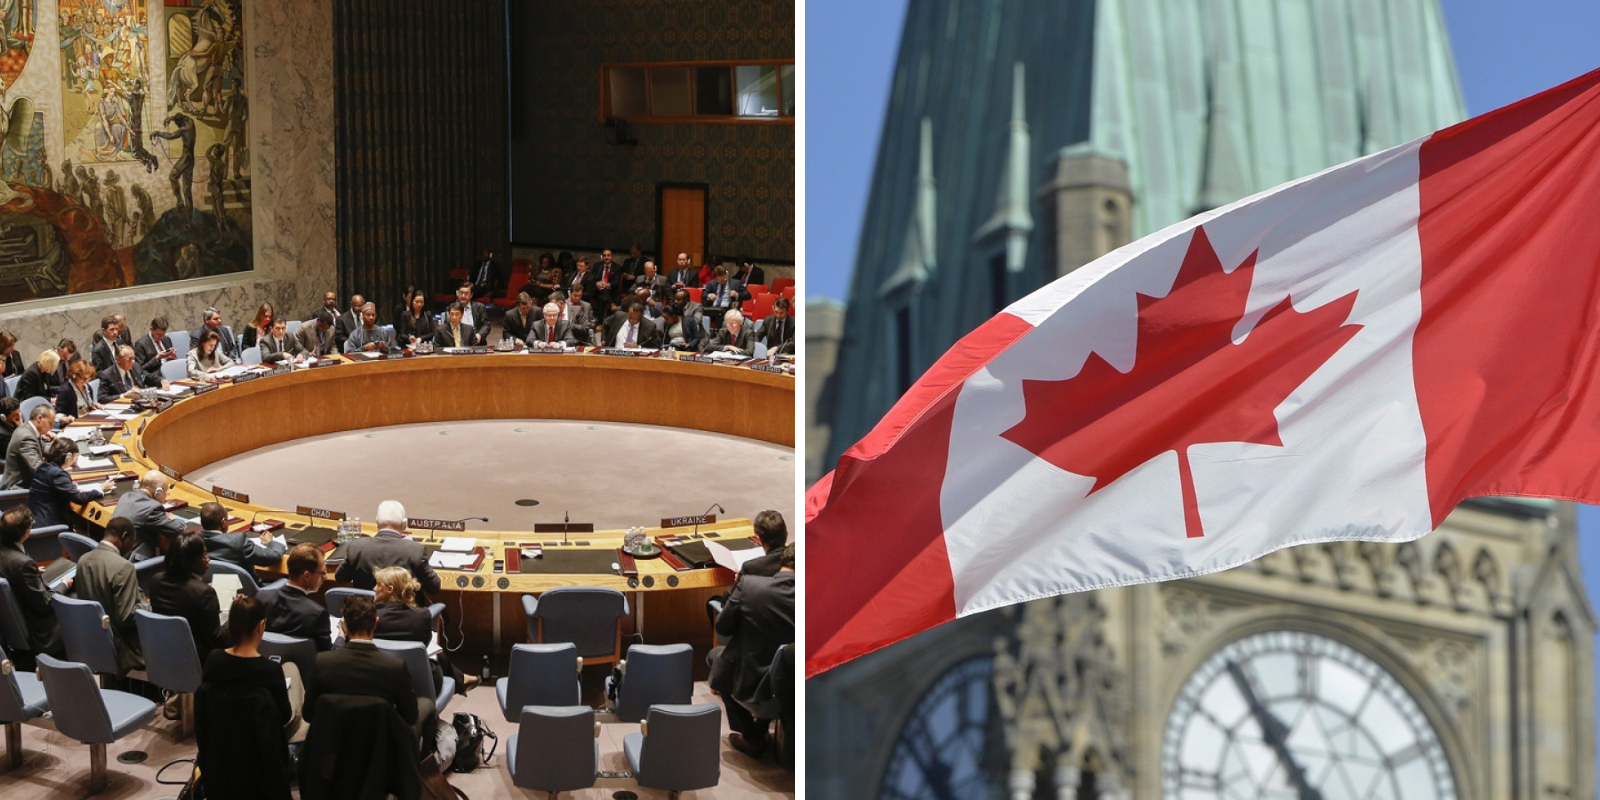 Canada disturbingly voted against its ally Israel at the UN this week in a desperate attempt to win Security Council seat.